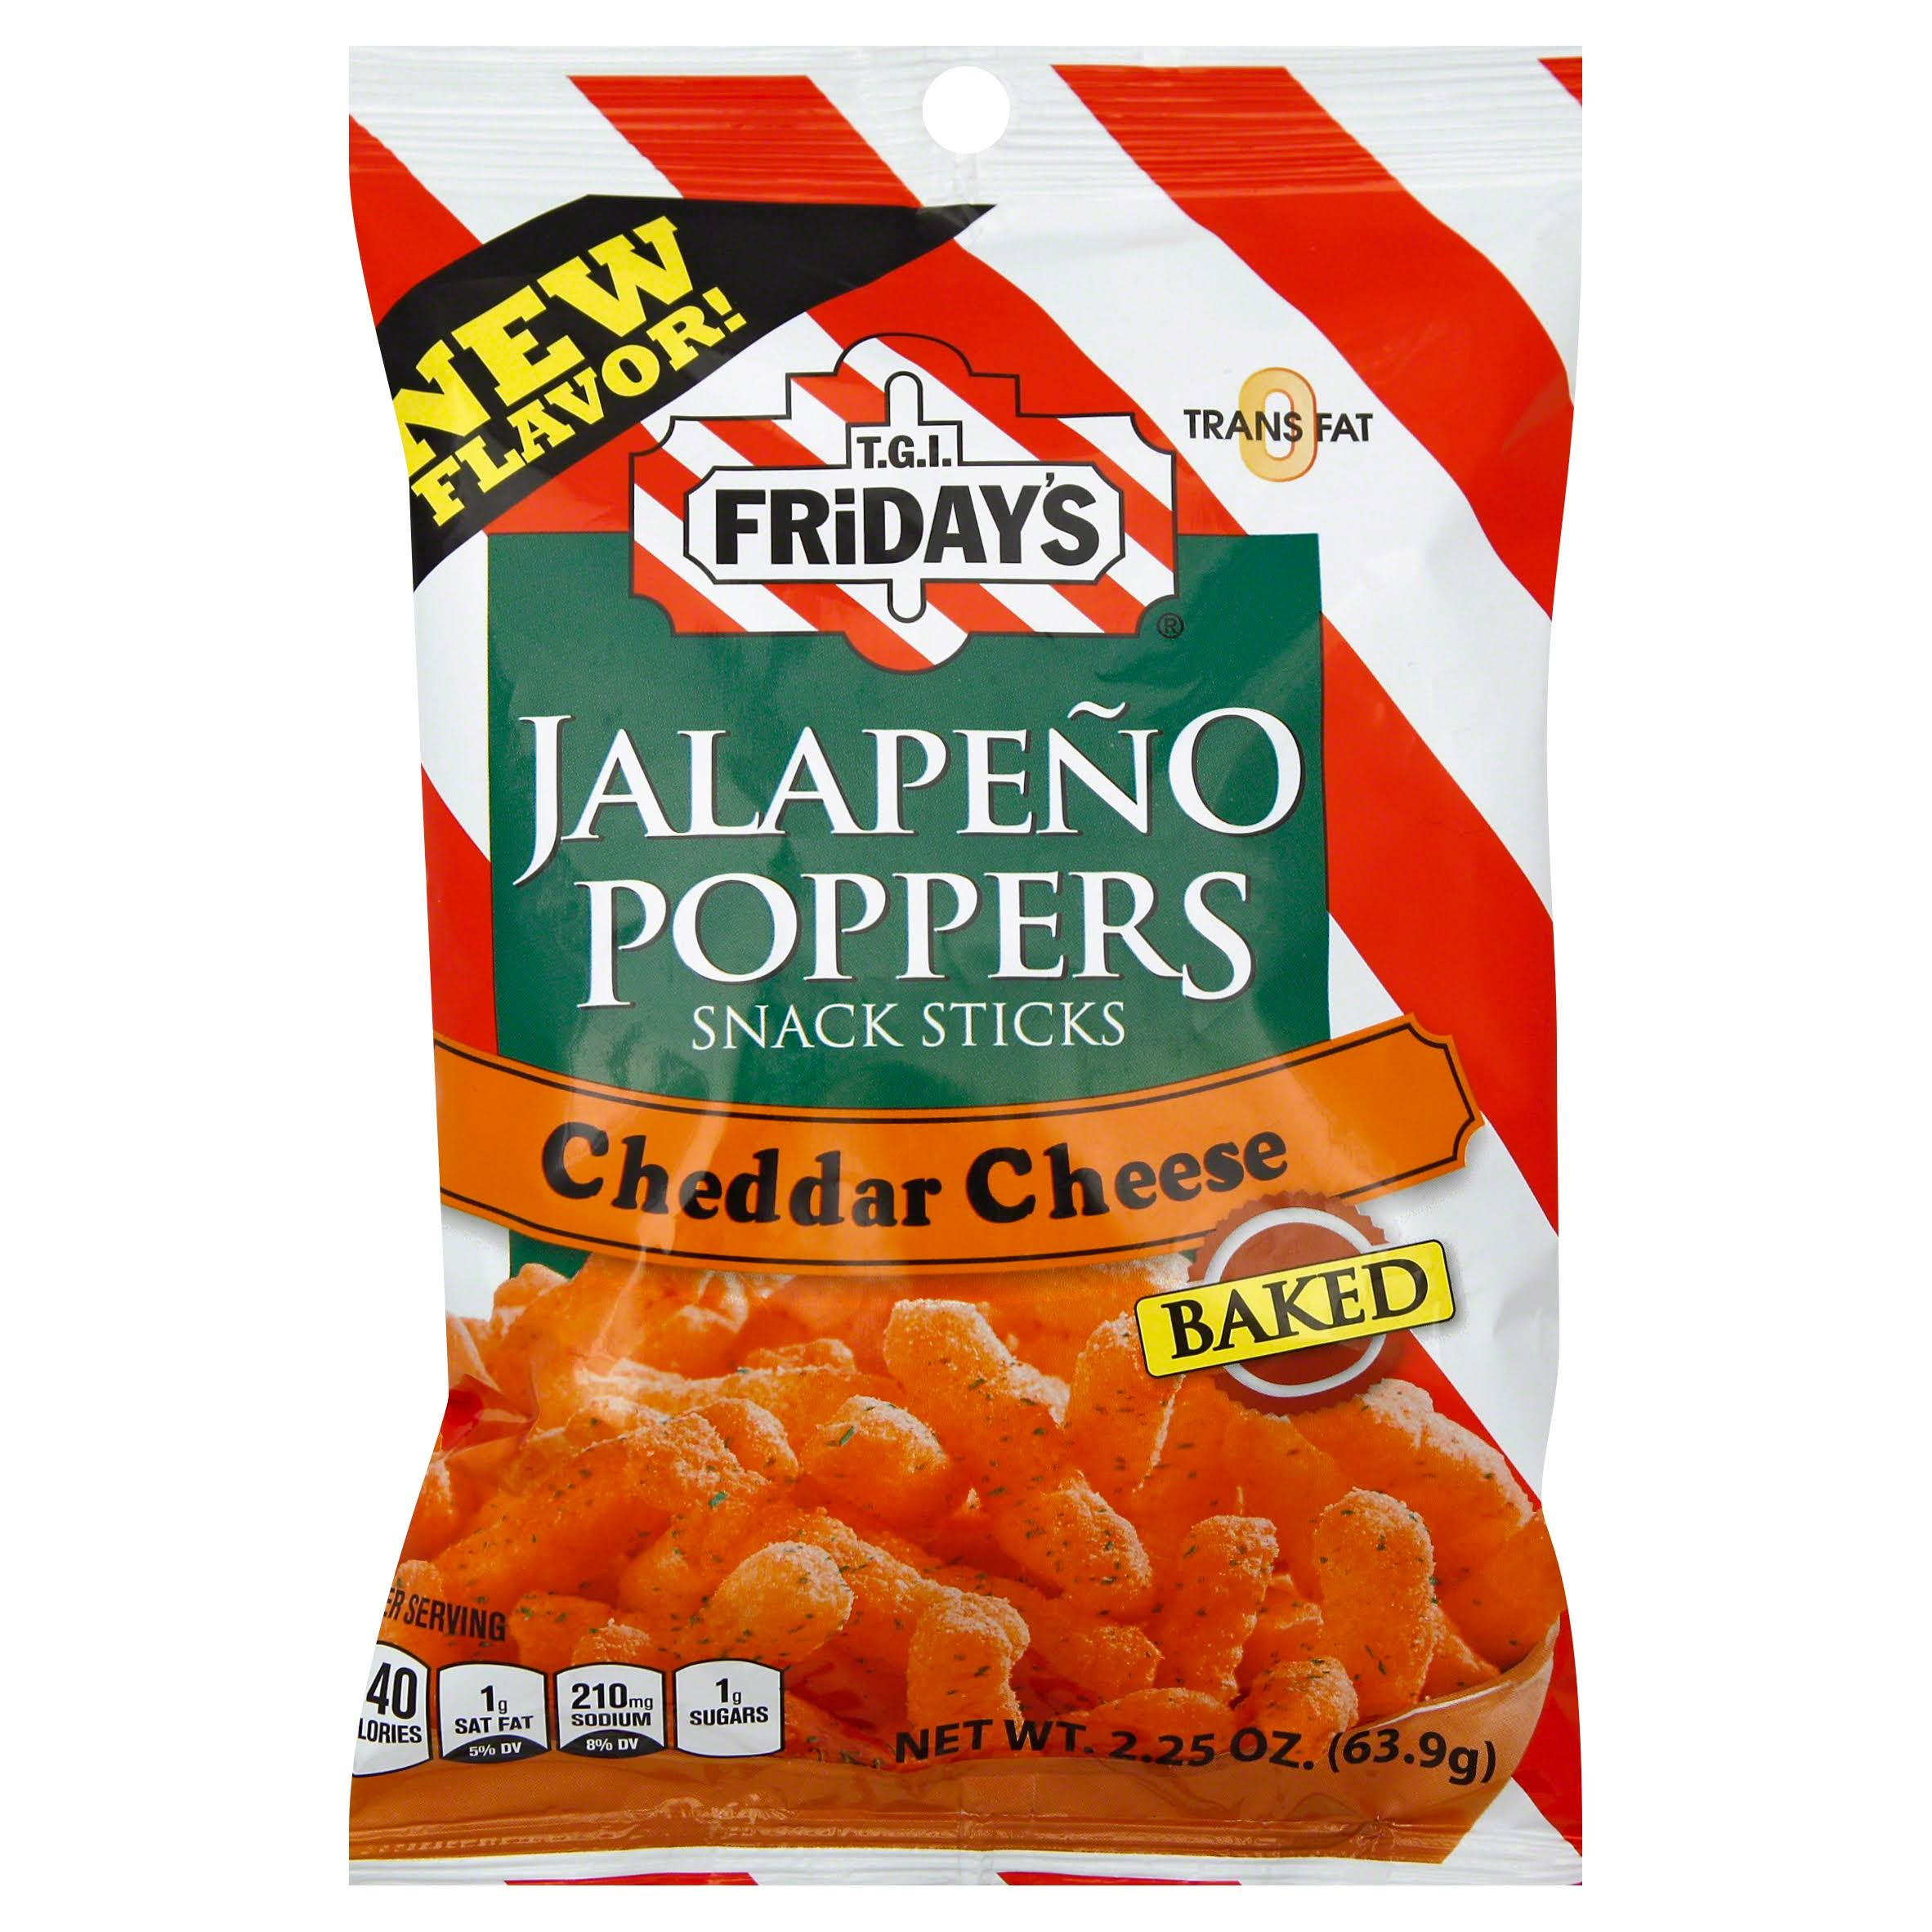 Tgi Friday Jalapeno Popper Sticks - Cheddar Cheese, 2.25oz